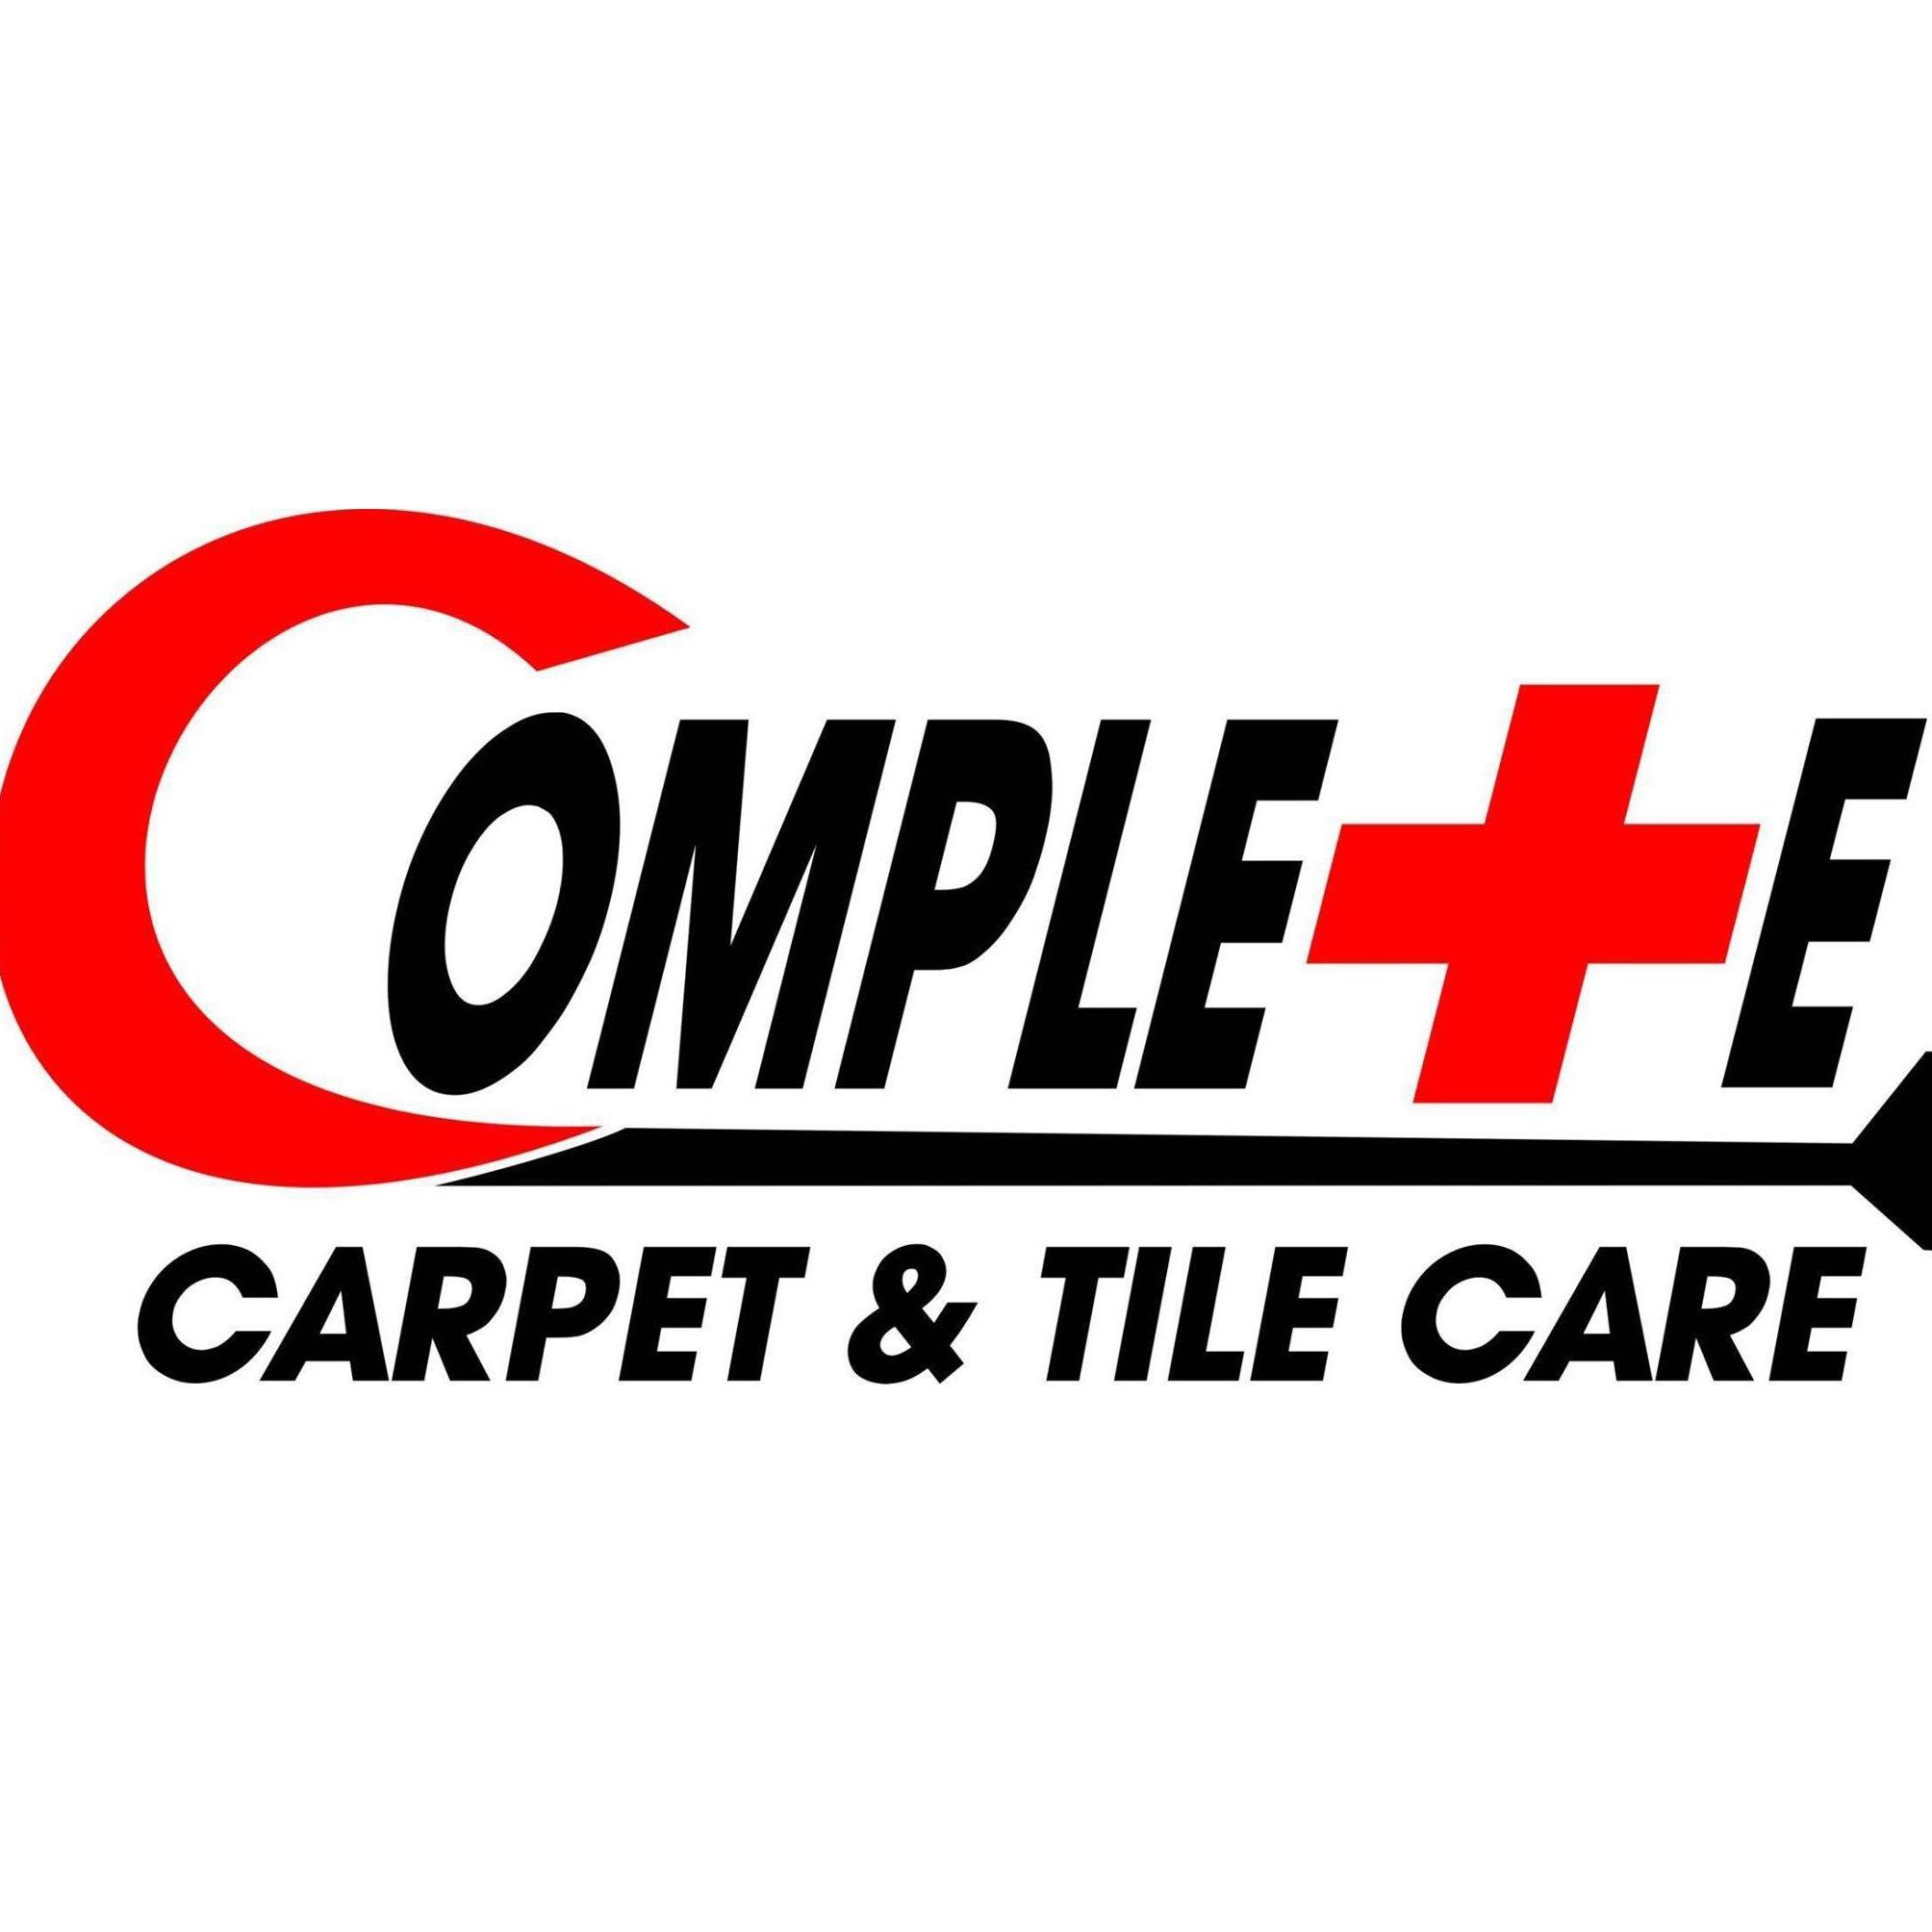 Complete Carpet and Tile Care